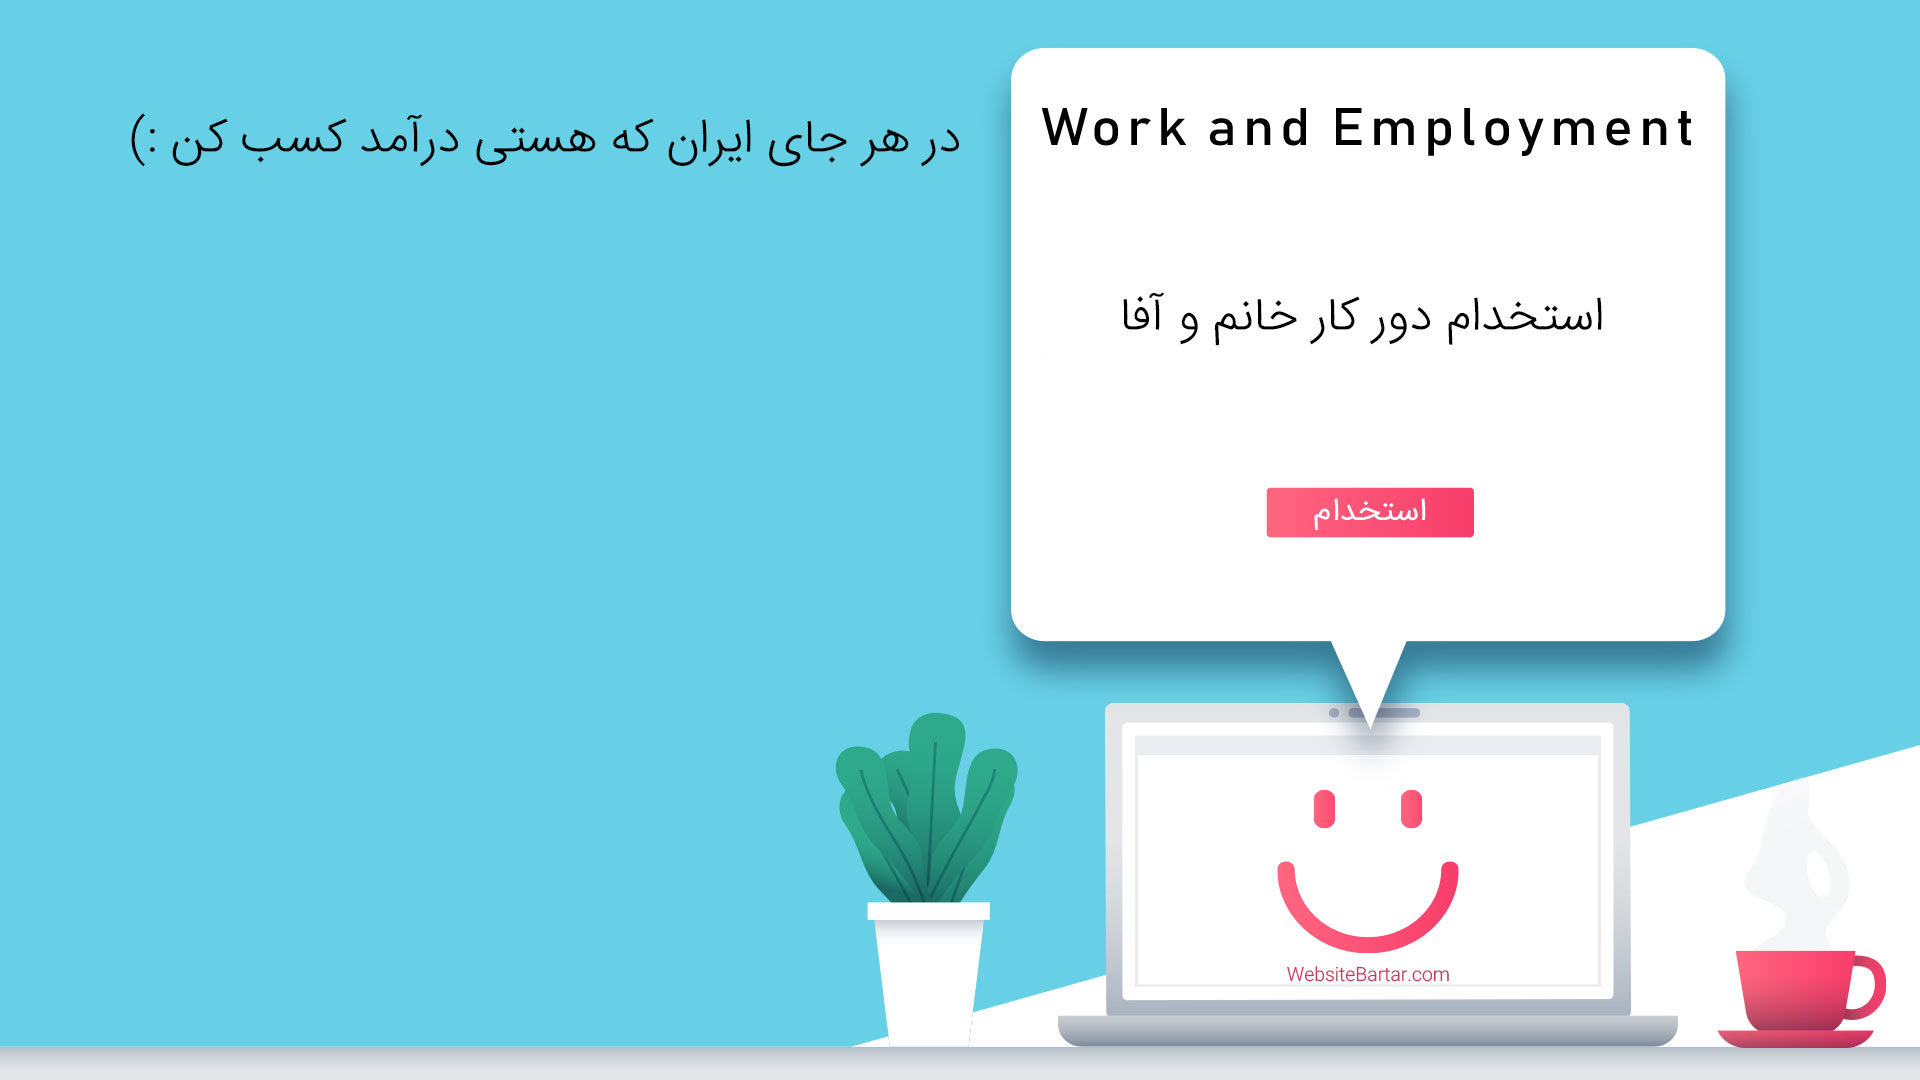 work-and-employment-websitebartar